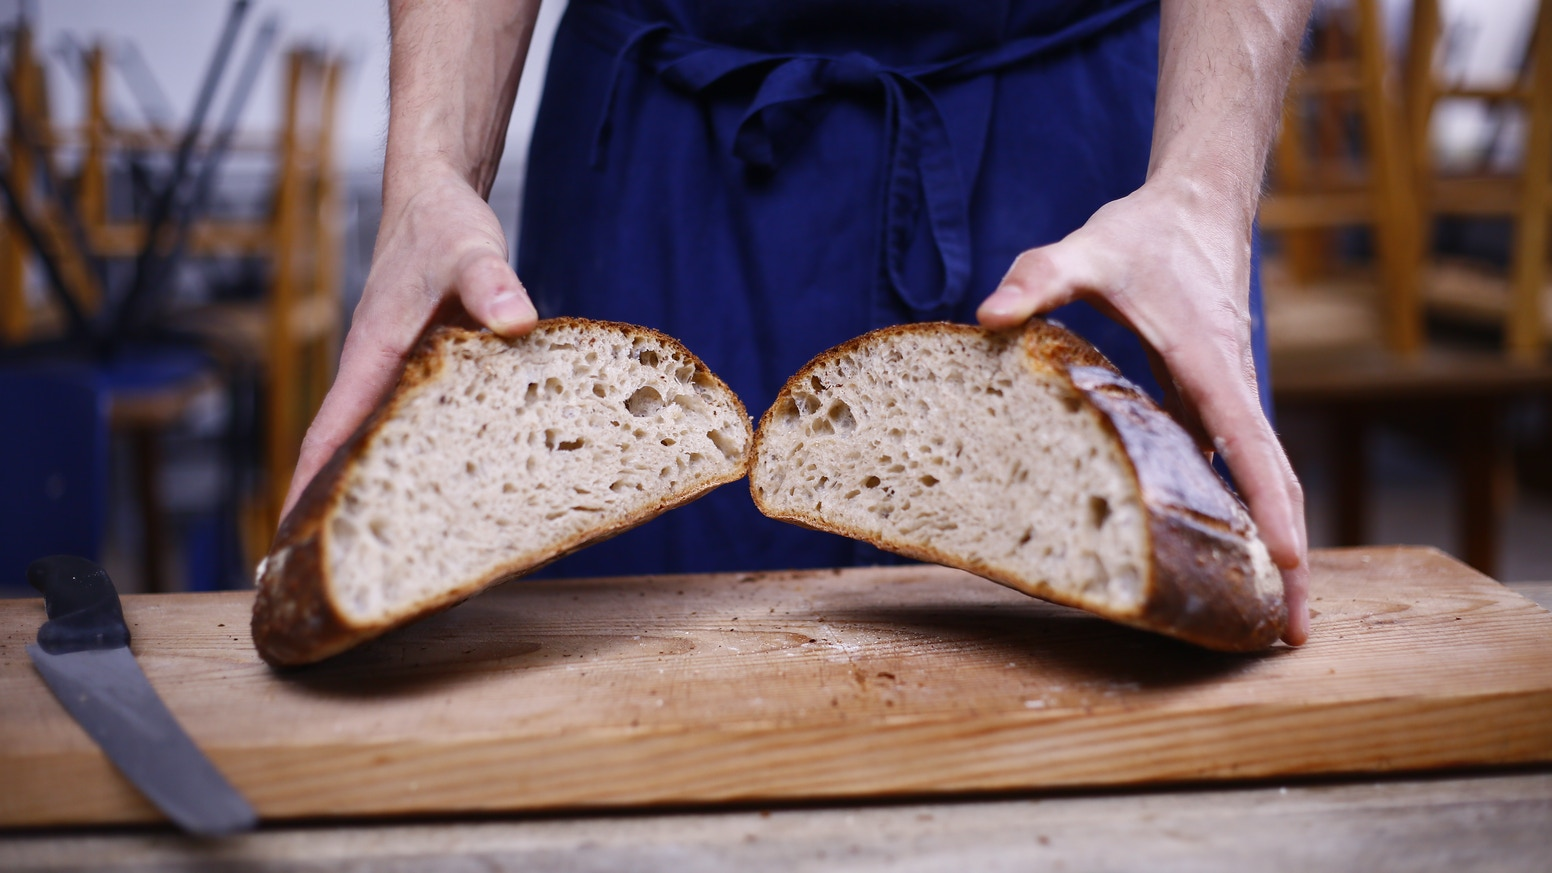 Join us in opening a bakery in Refshaleøen, bringing artisanal organic sourdough bread to this side of the Copenhagen harbour!